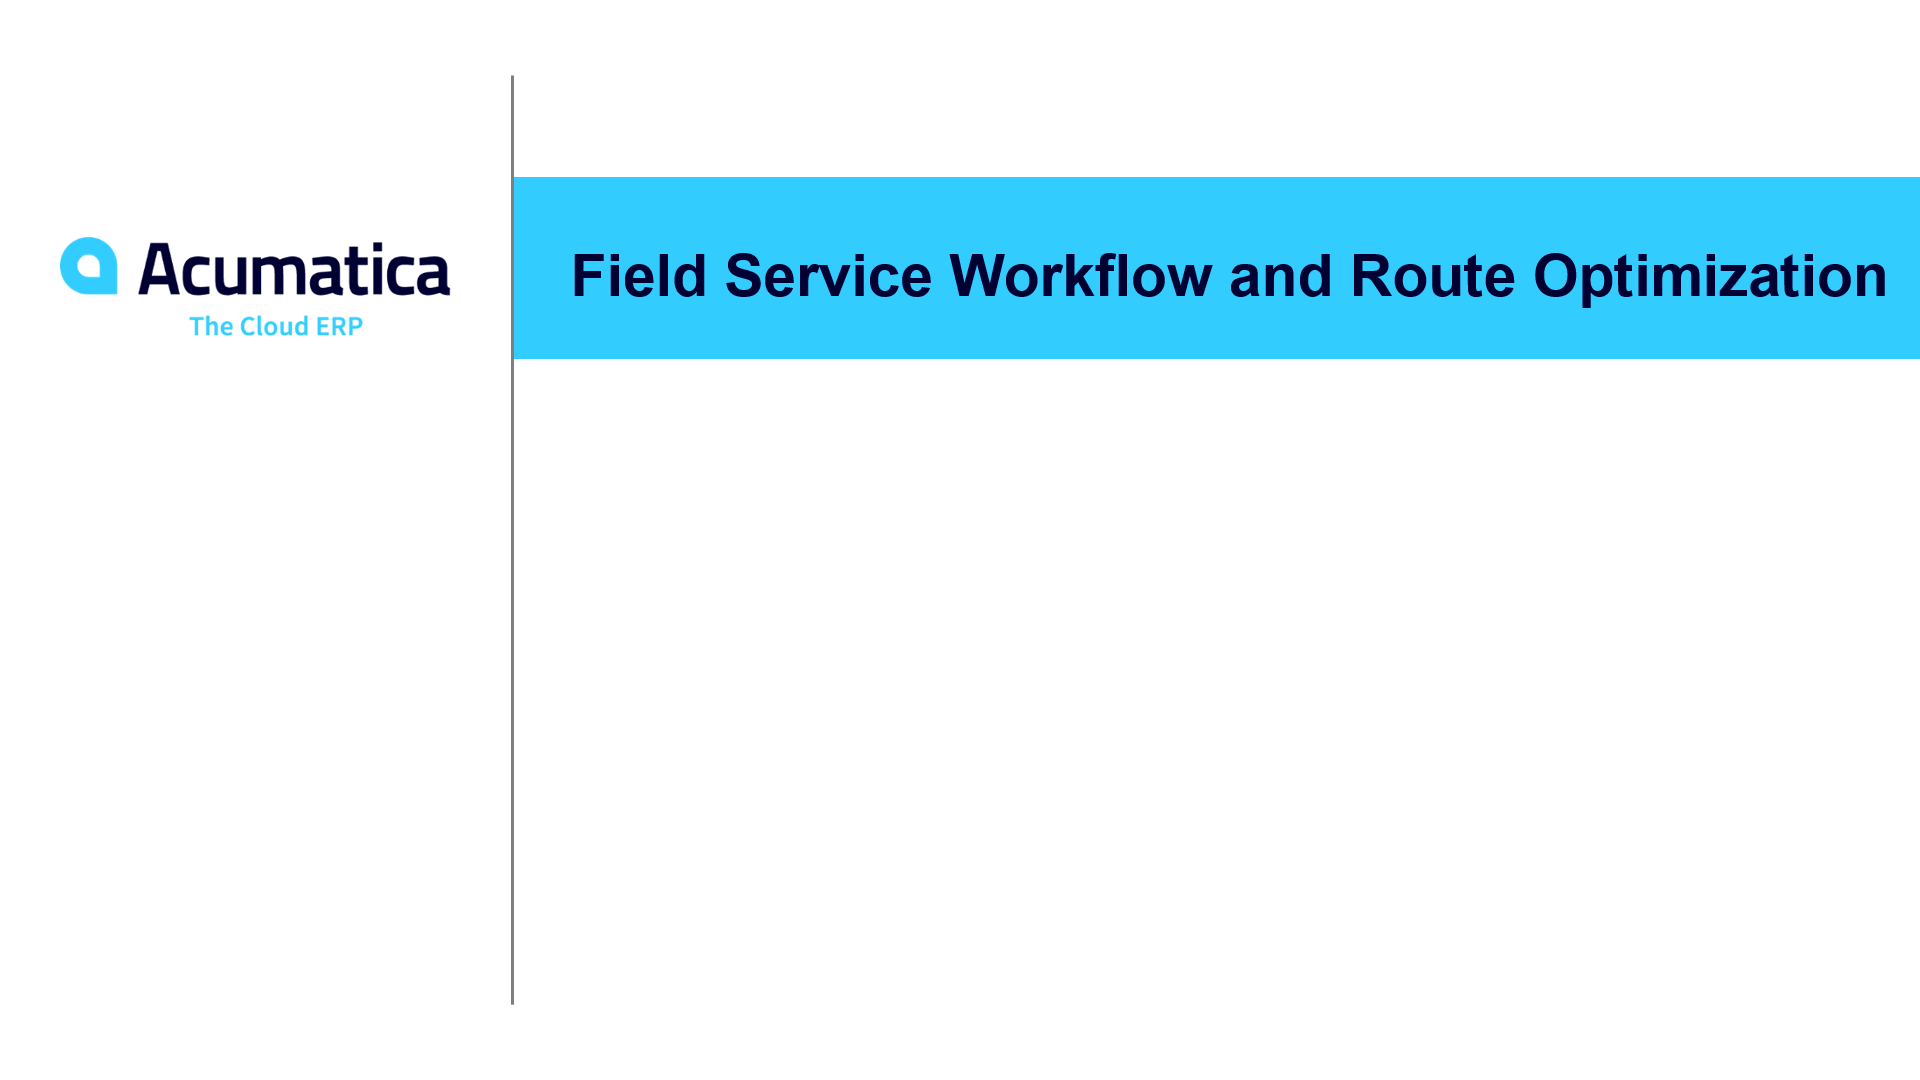 Field service workflow and route optimization (January 2020)